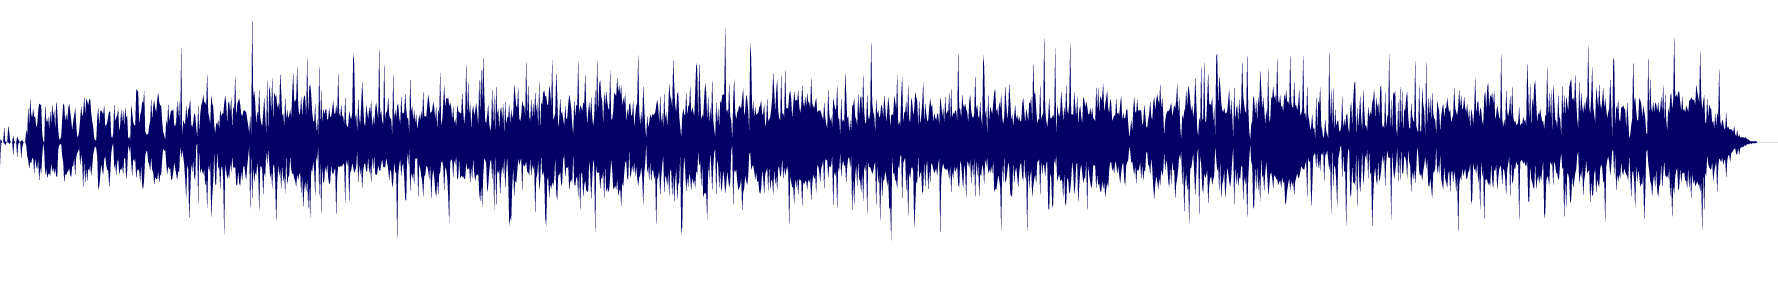 waveform of track #113031